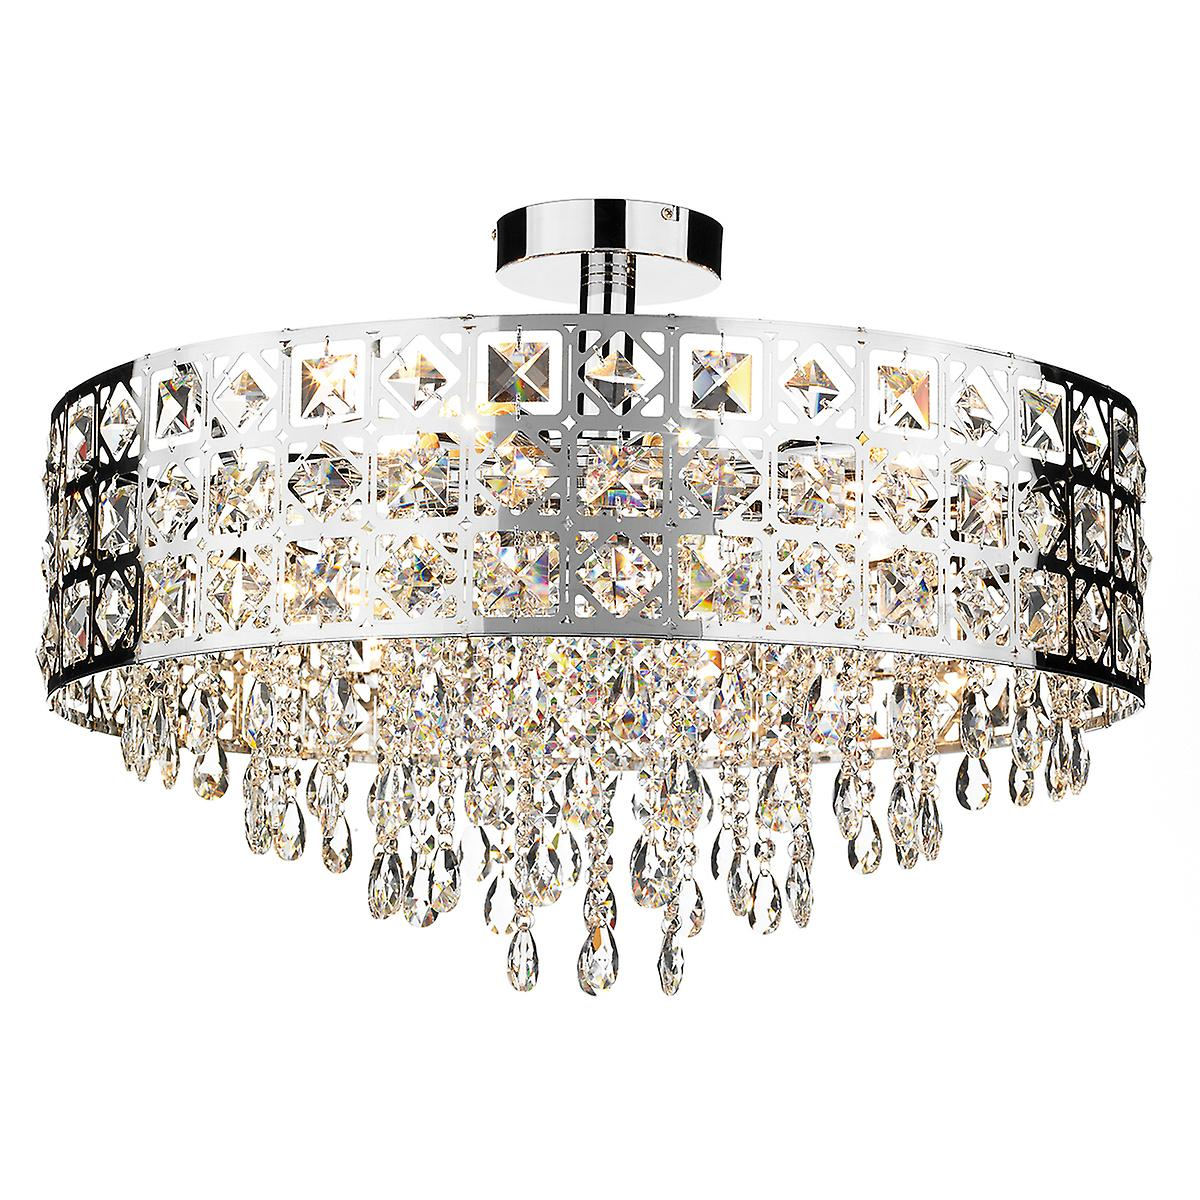 Dar DUC0650 Duchess Modern Chrome 6 Light Round Crystal Ceiling Pendant